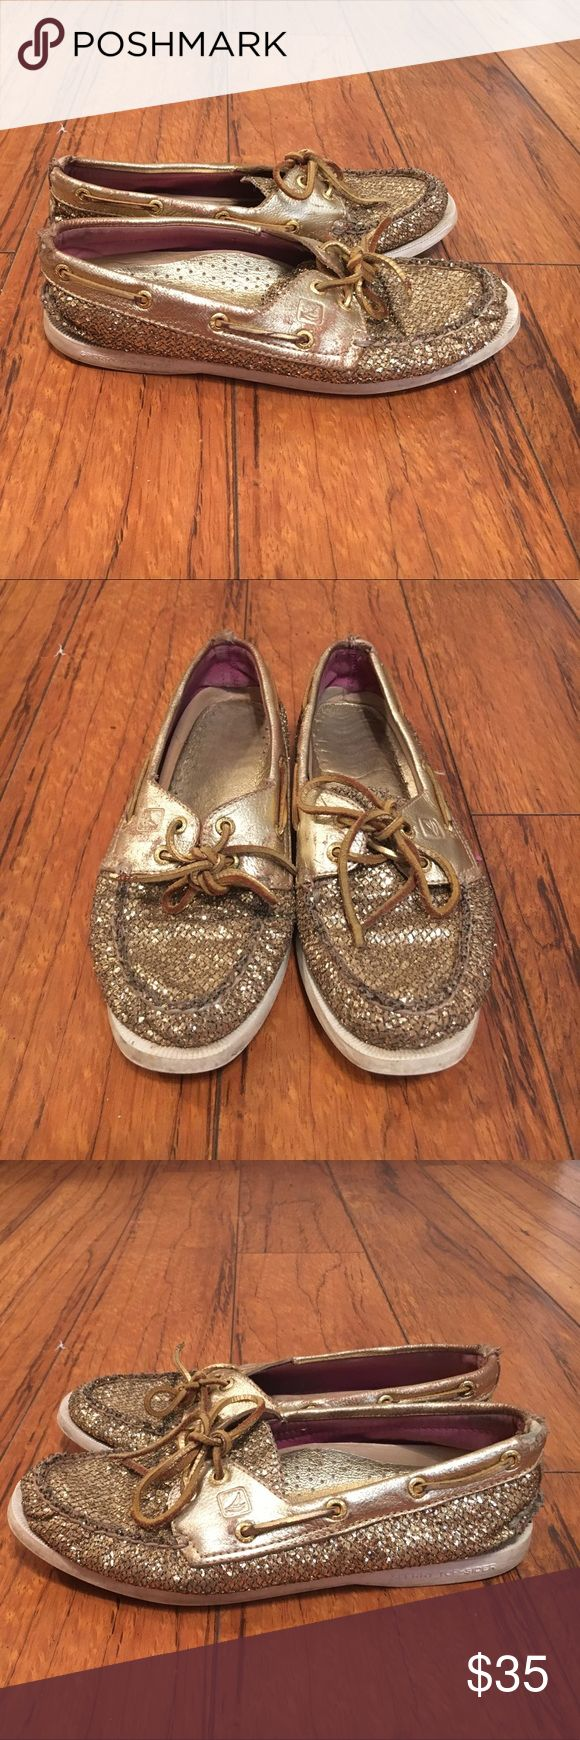 Gold Sperry Top-Sider Shoes Gold glitter Sperry Top-Sider shoes, size 7. Good condition and very cute!! Make an offer!:) Sperry Top-Sider Shoes